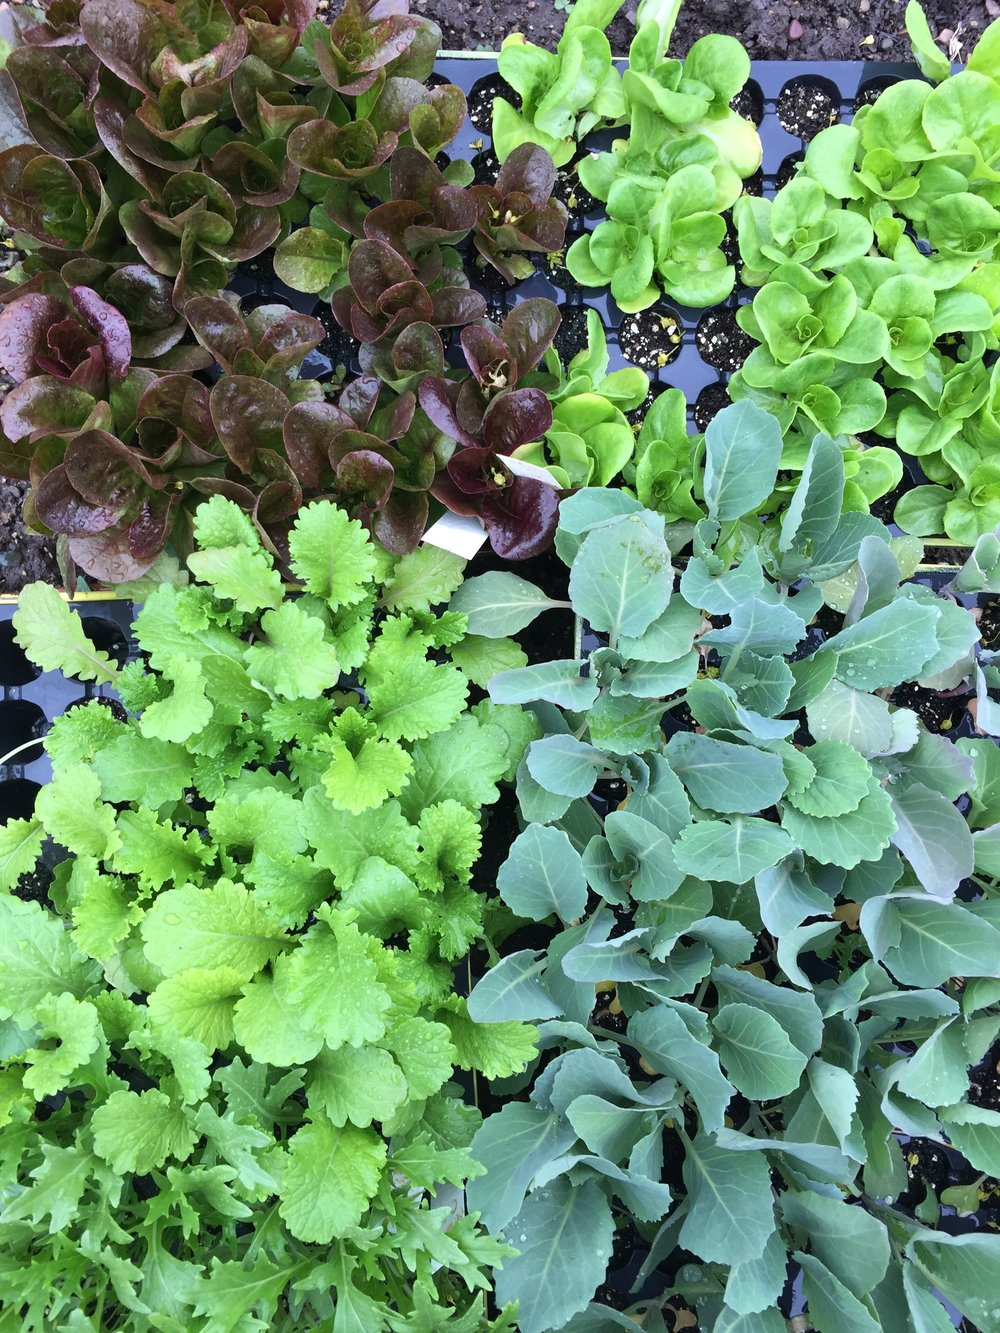 Clockwise from upper left: Red leaf lettuce, green leaf lettuce, broccoli, and spicy mustard greens.